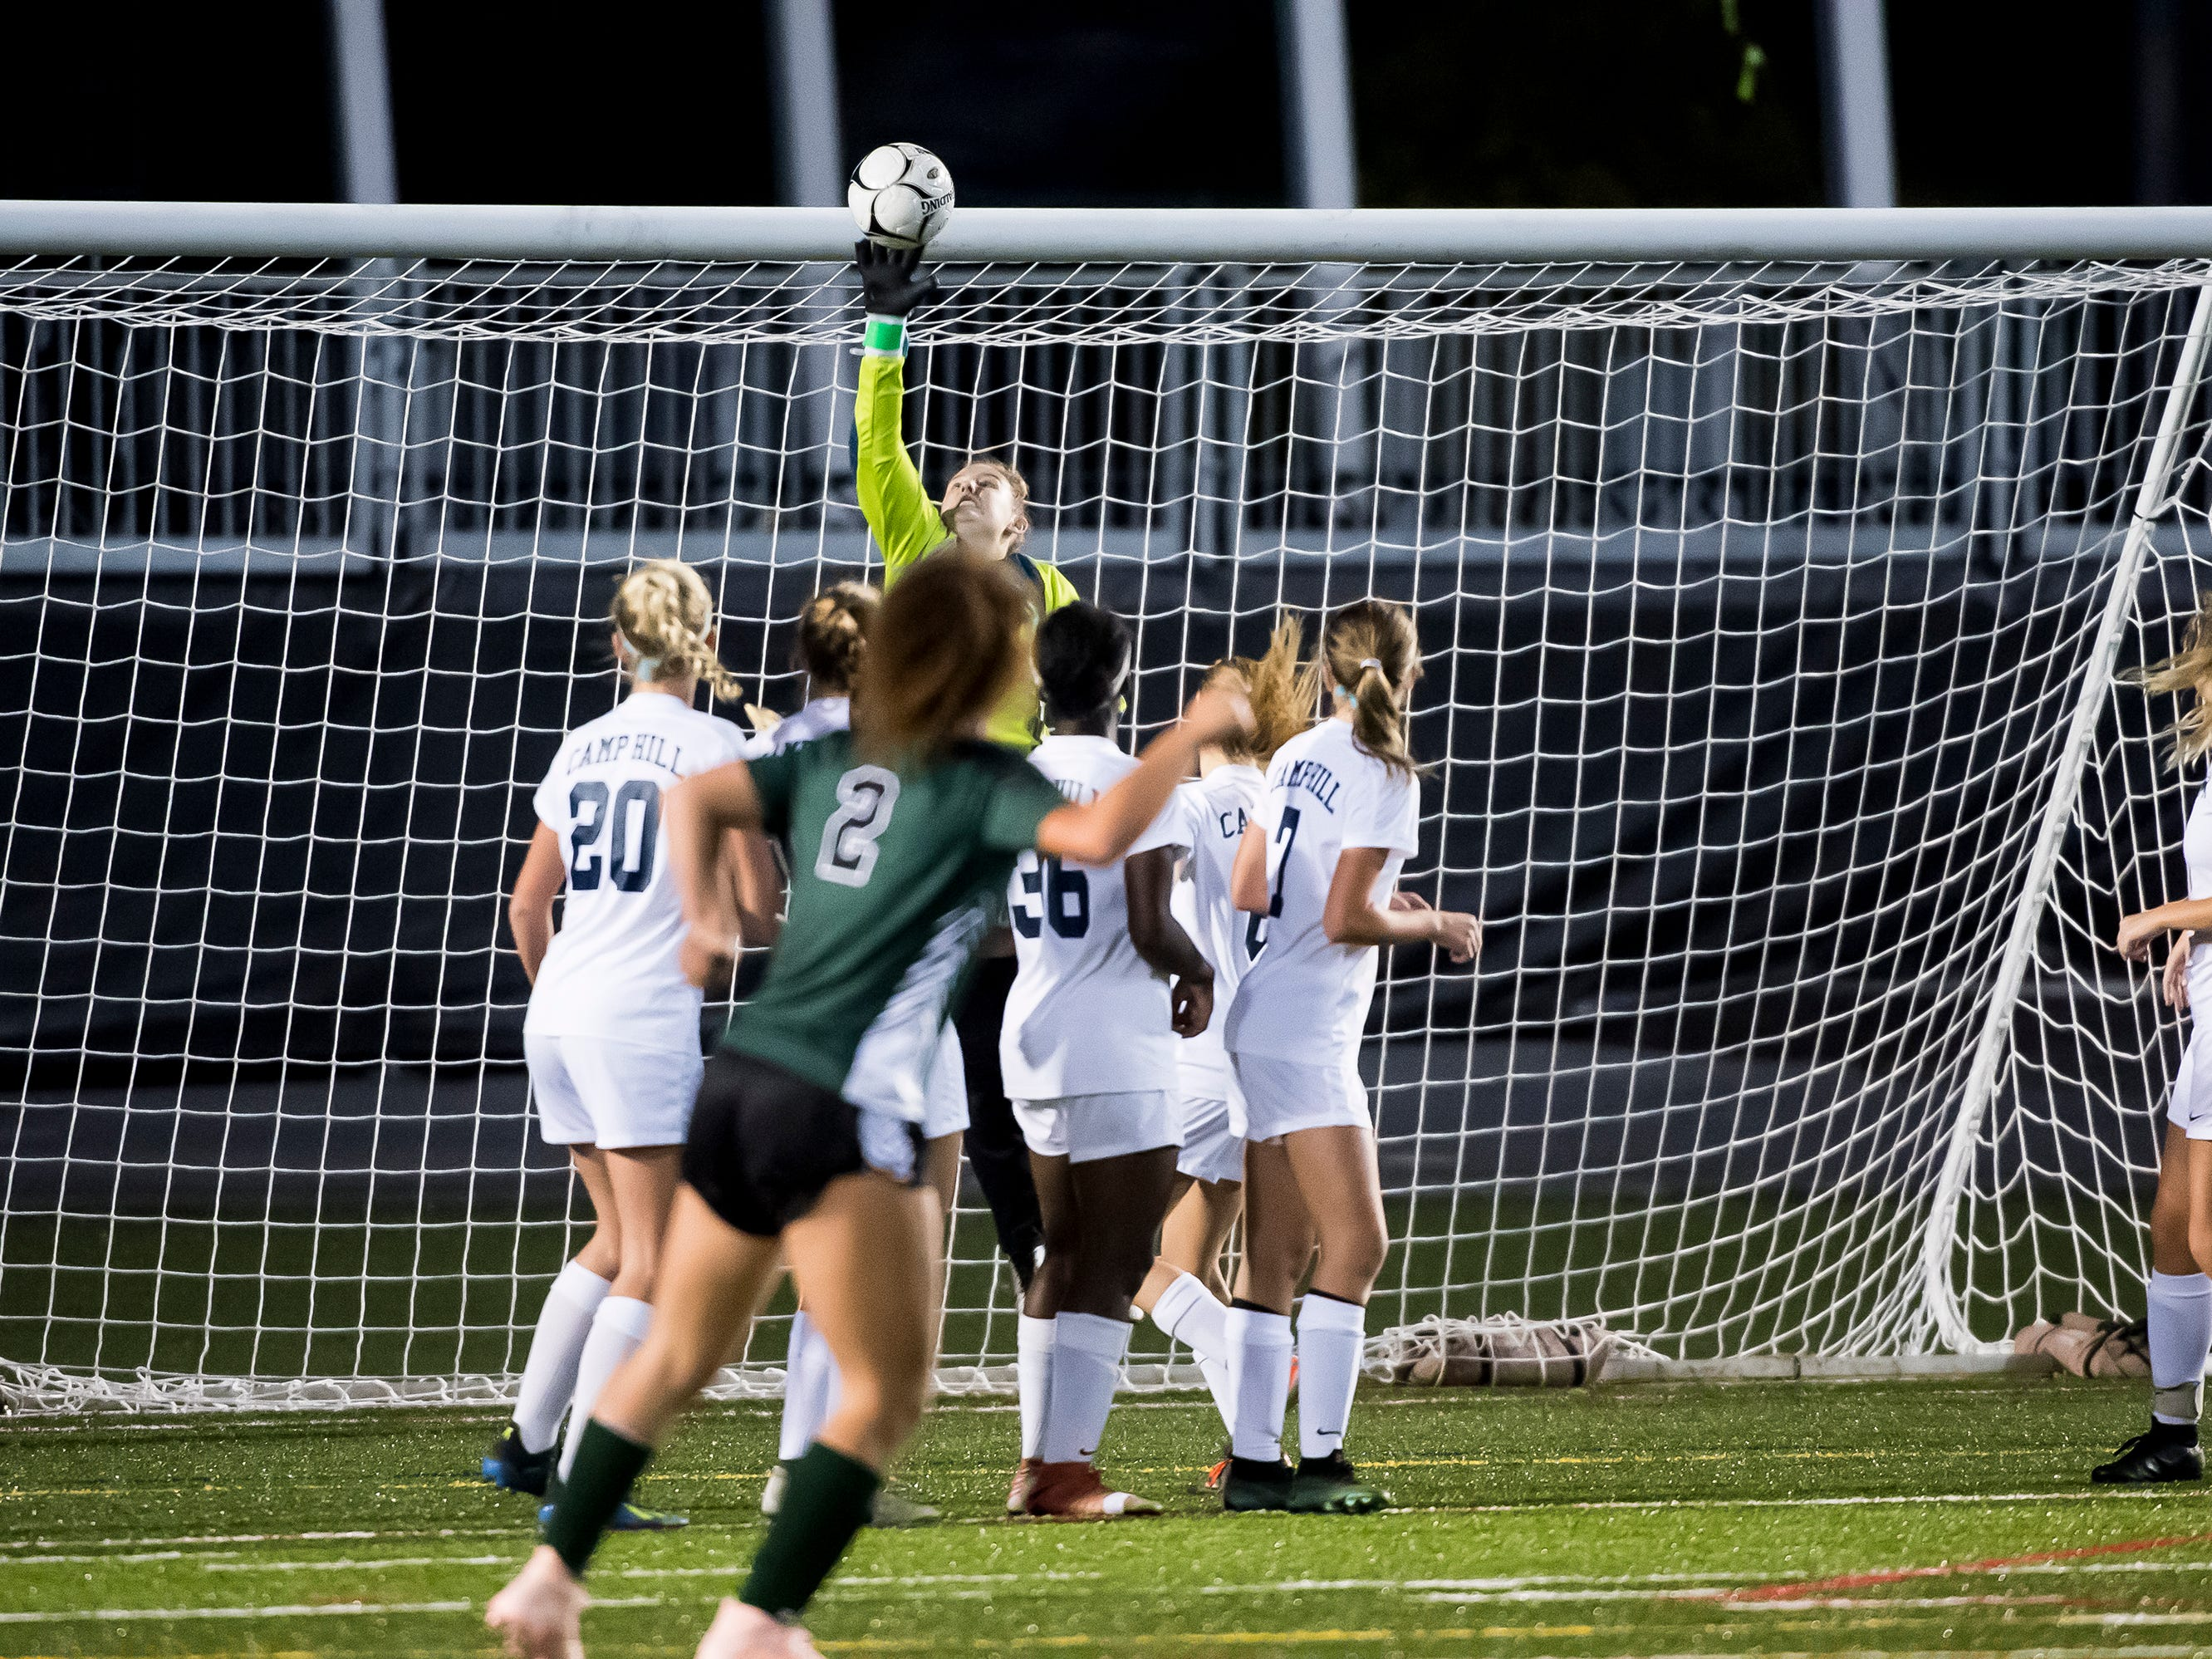 Camp Hill goal keeper Kendal McCall tips a direct free shot from Fairfield's Annabel Anderson out of play during the PIAA District III Class A championship game at Hershey Park Stadium on Wednesday, October 31, 2018. The Knights fell in overtime 1-0.